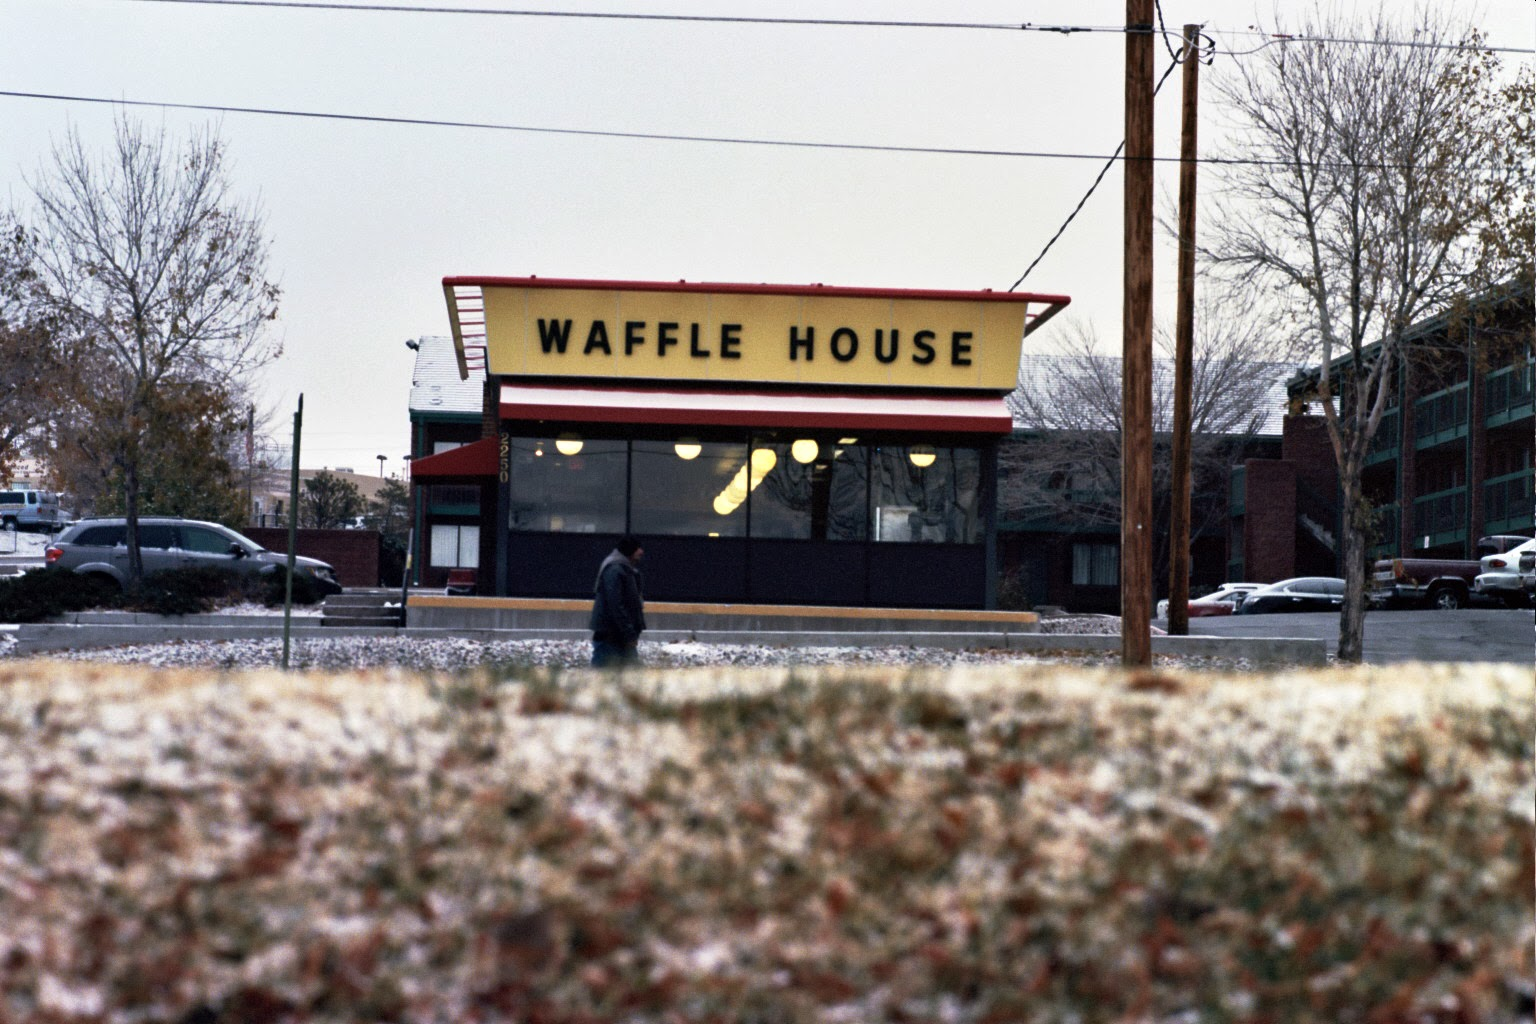 Waffle House Albuquerque 28 Images 174 Best Iphoneography Images On Pinterest Craigslist